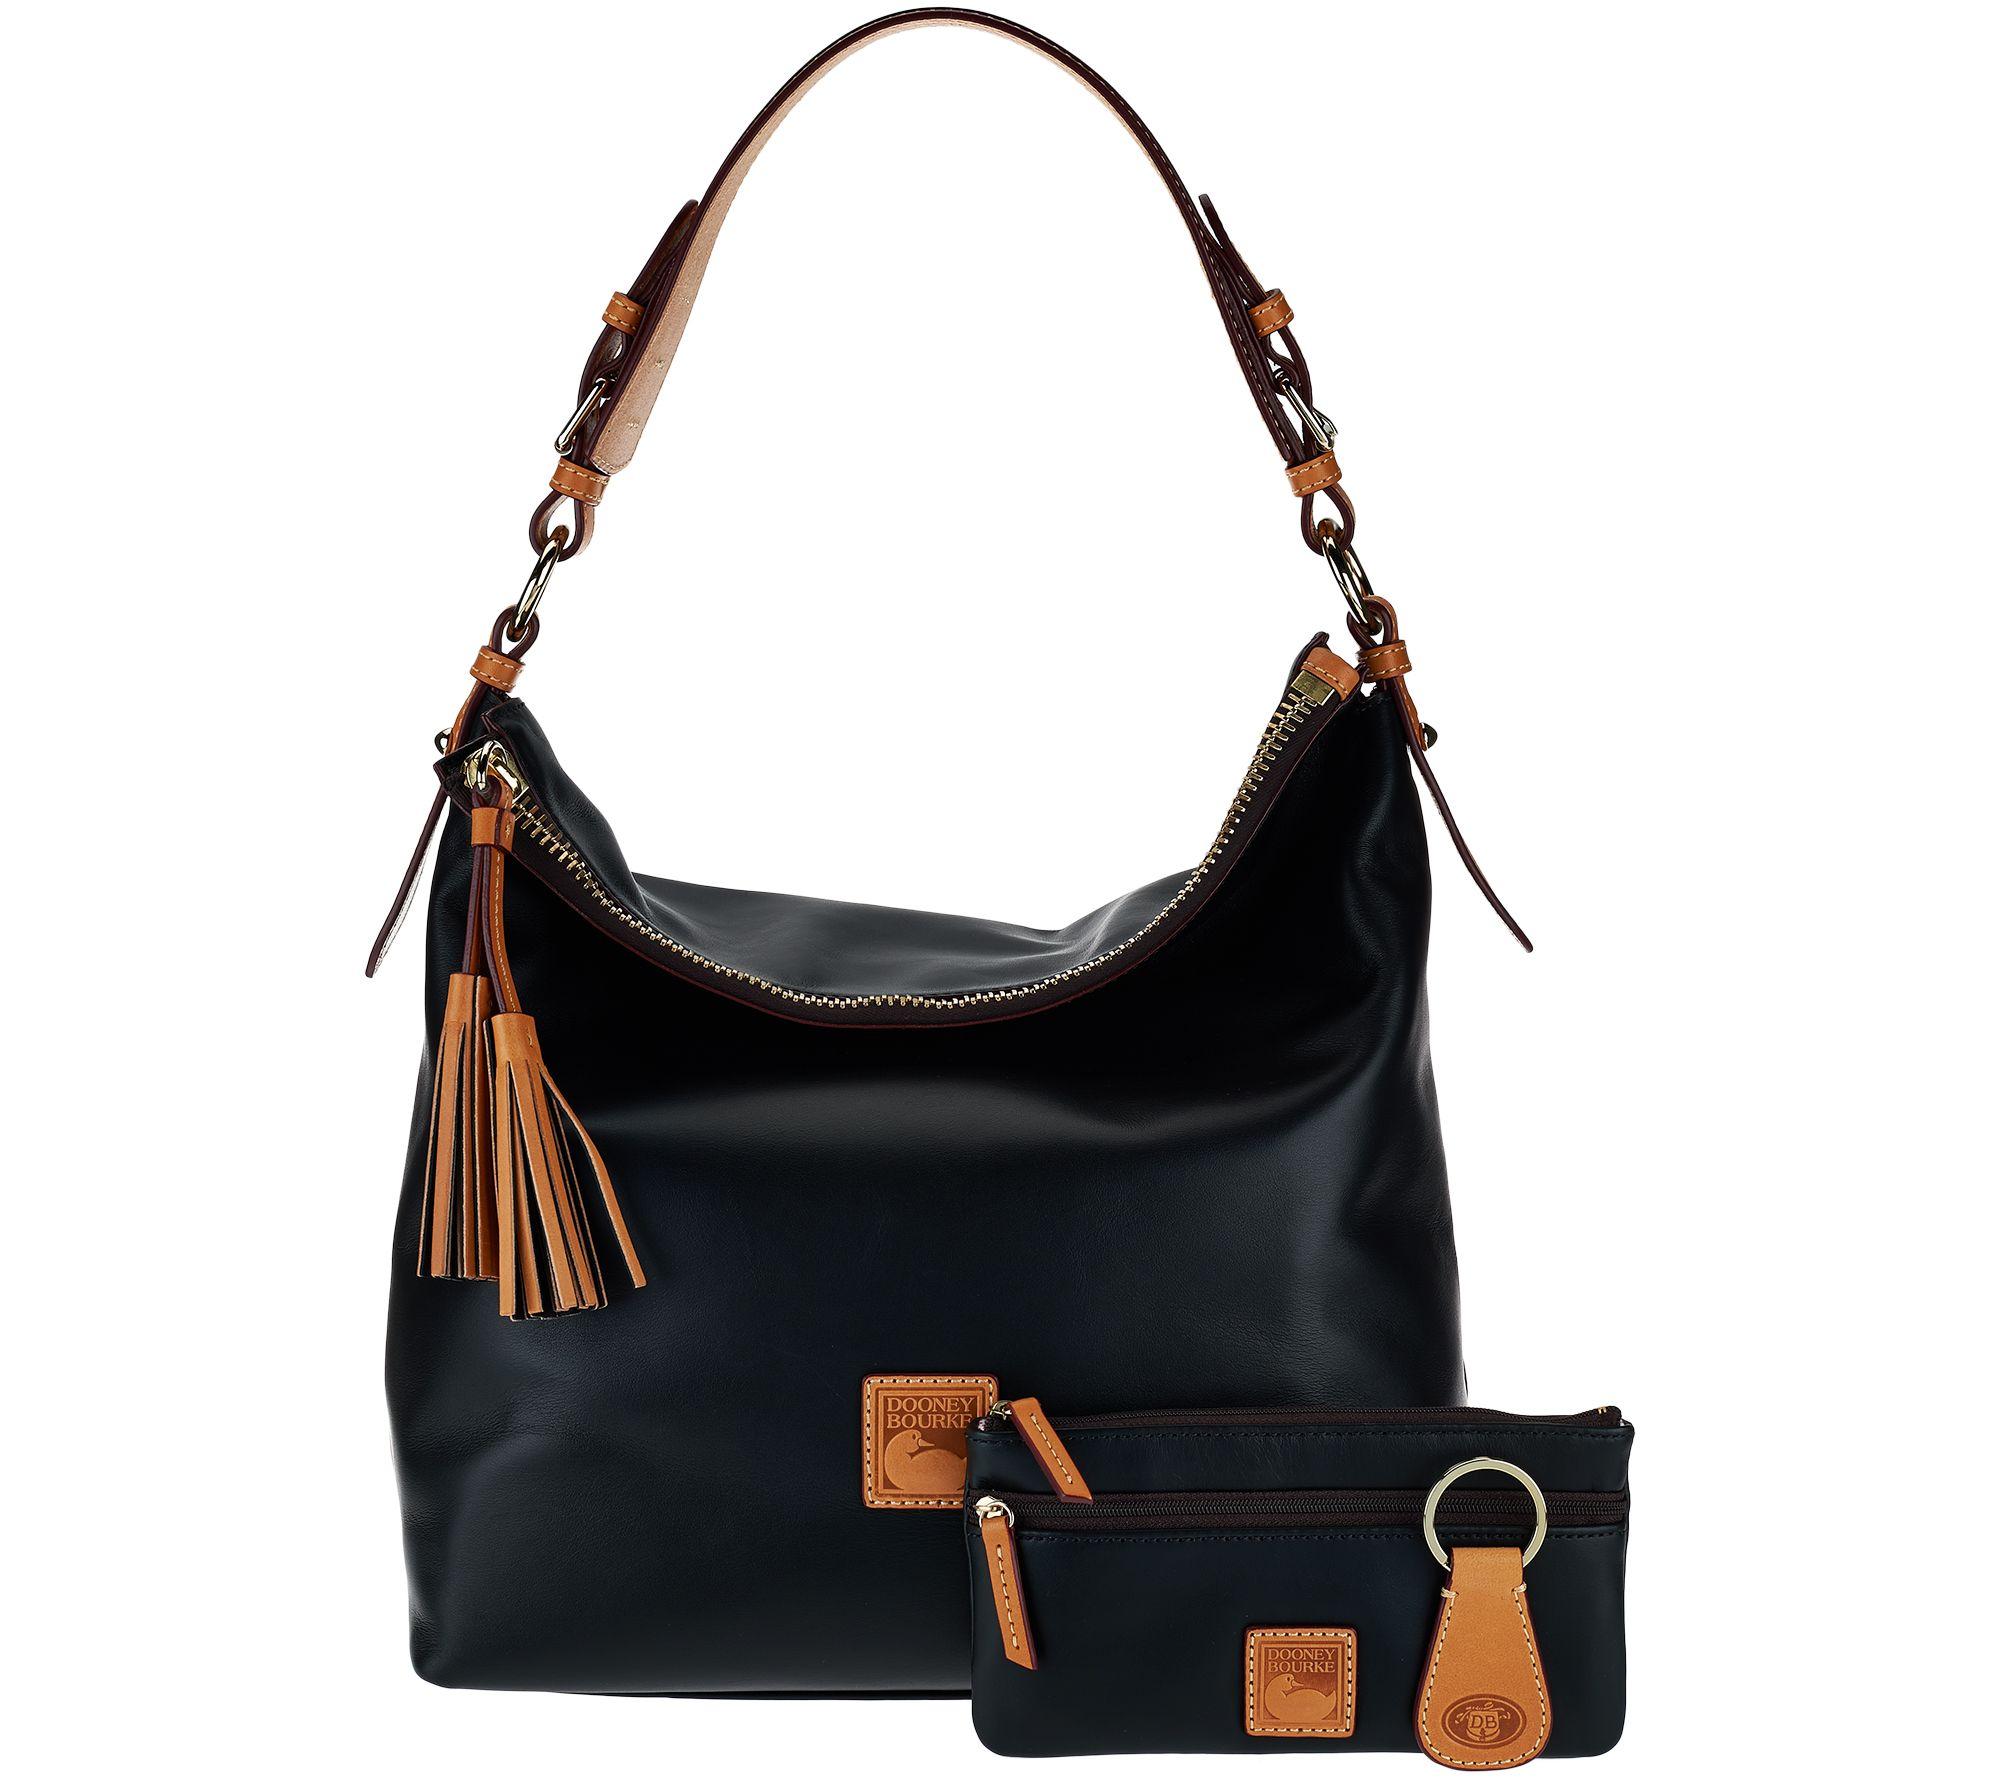 leather hobo bags dooney u0026 bourke smooth leather hobo with accessories - page 1 - qvc.com iqhqdoc